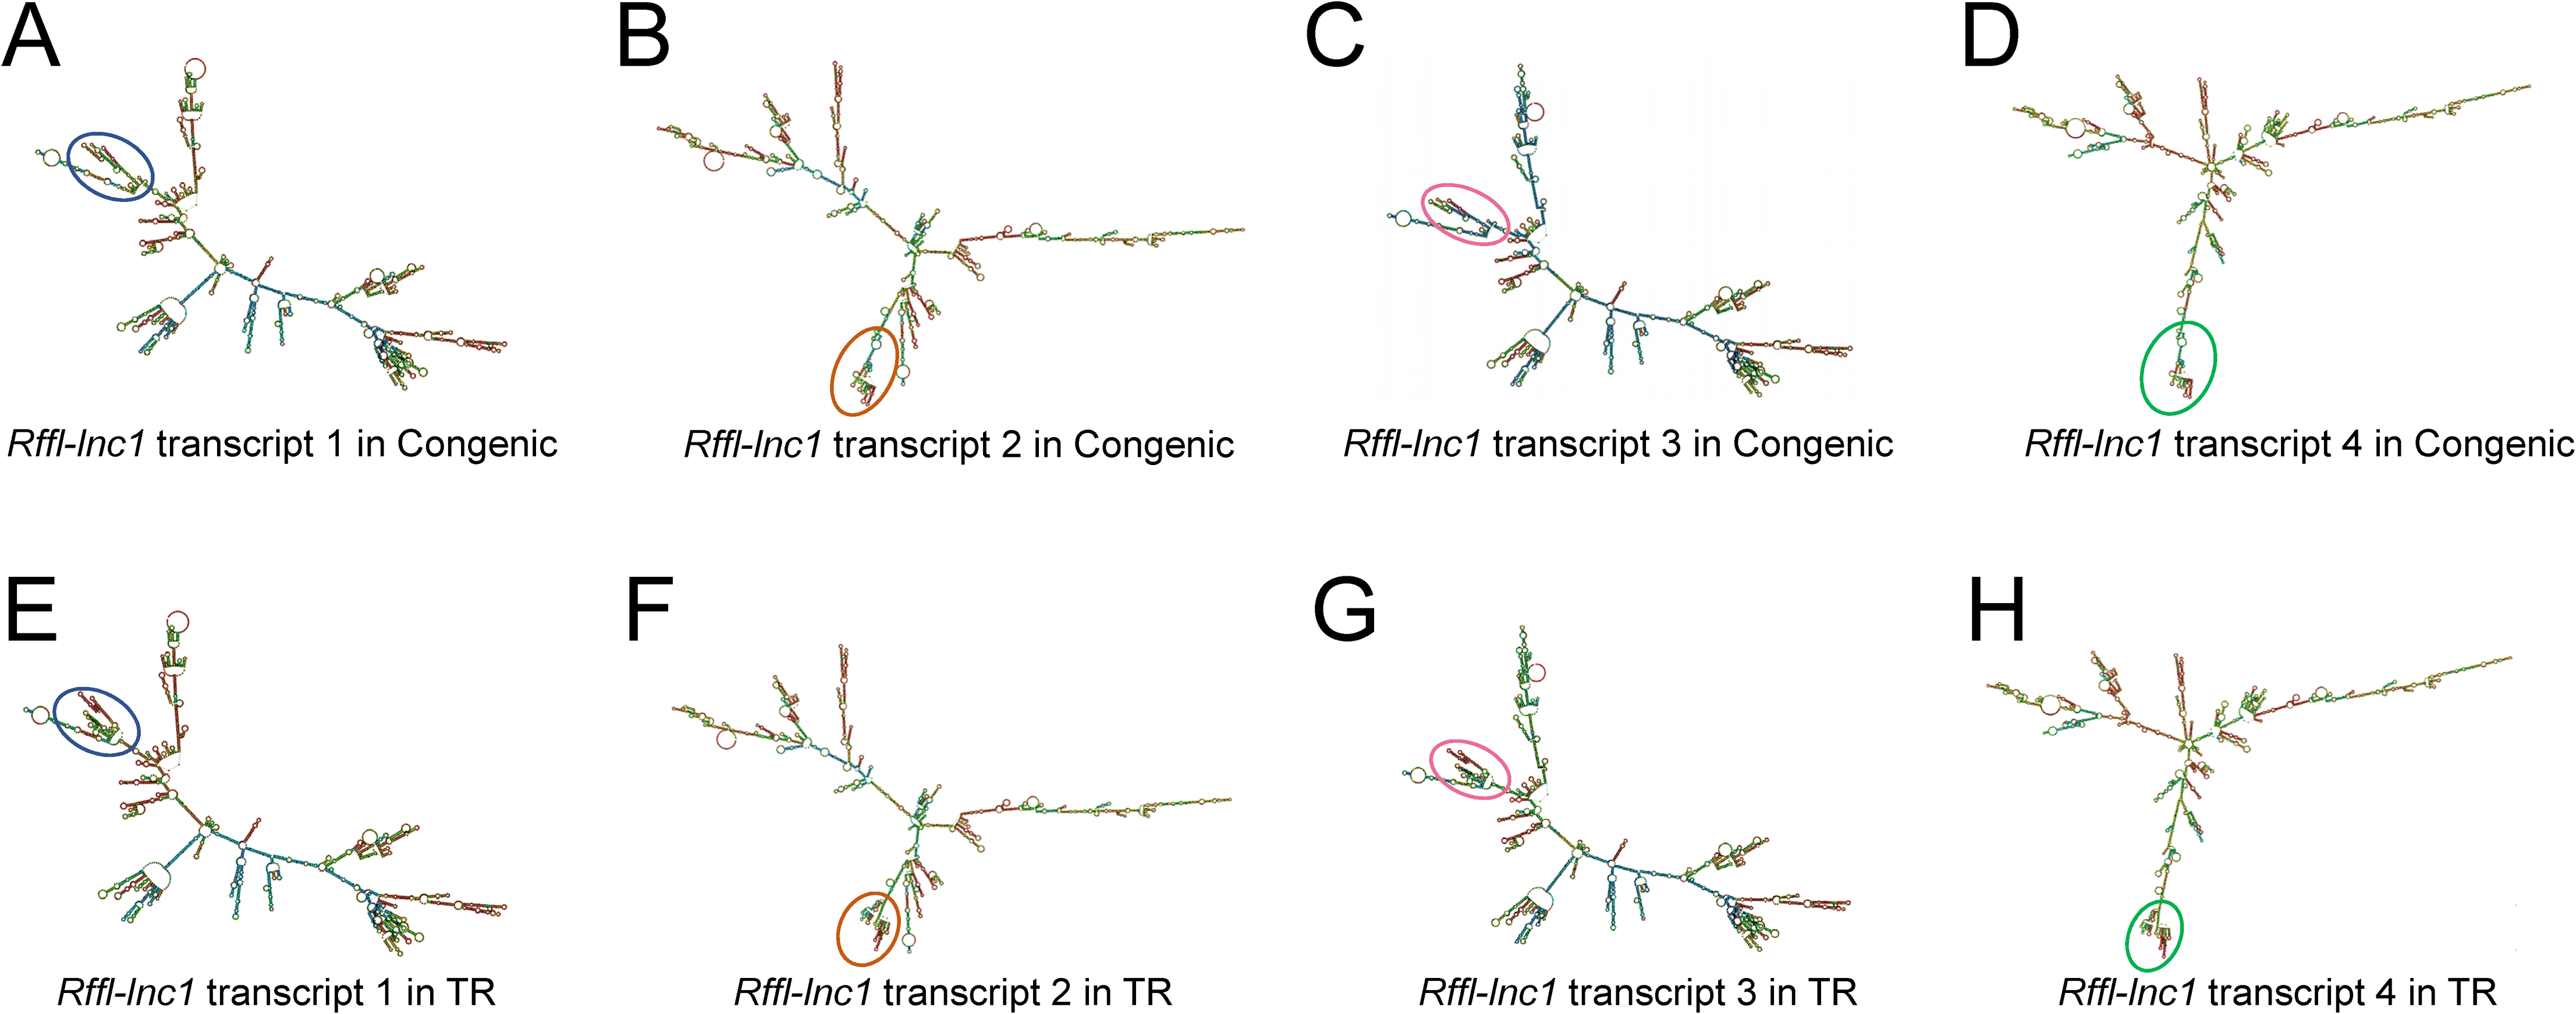 Bioinformatics prediction of <i>Rffl-lnc1</i> secondary structures in the S.LEW congenic rat and 19bp knock-in targeted rescue (TR) model.